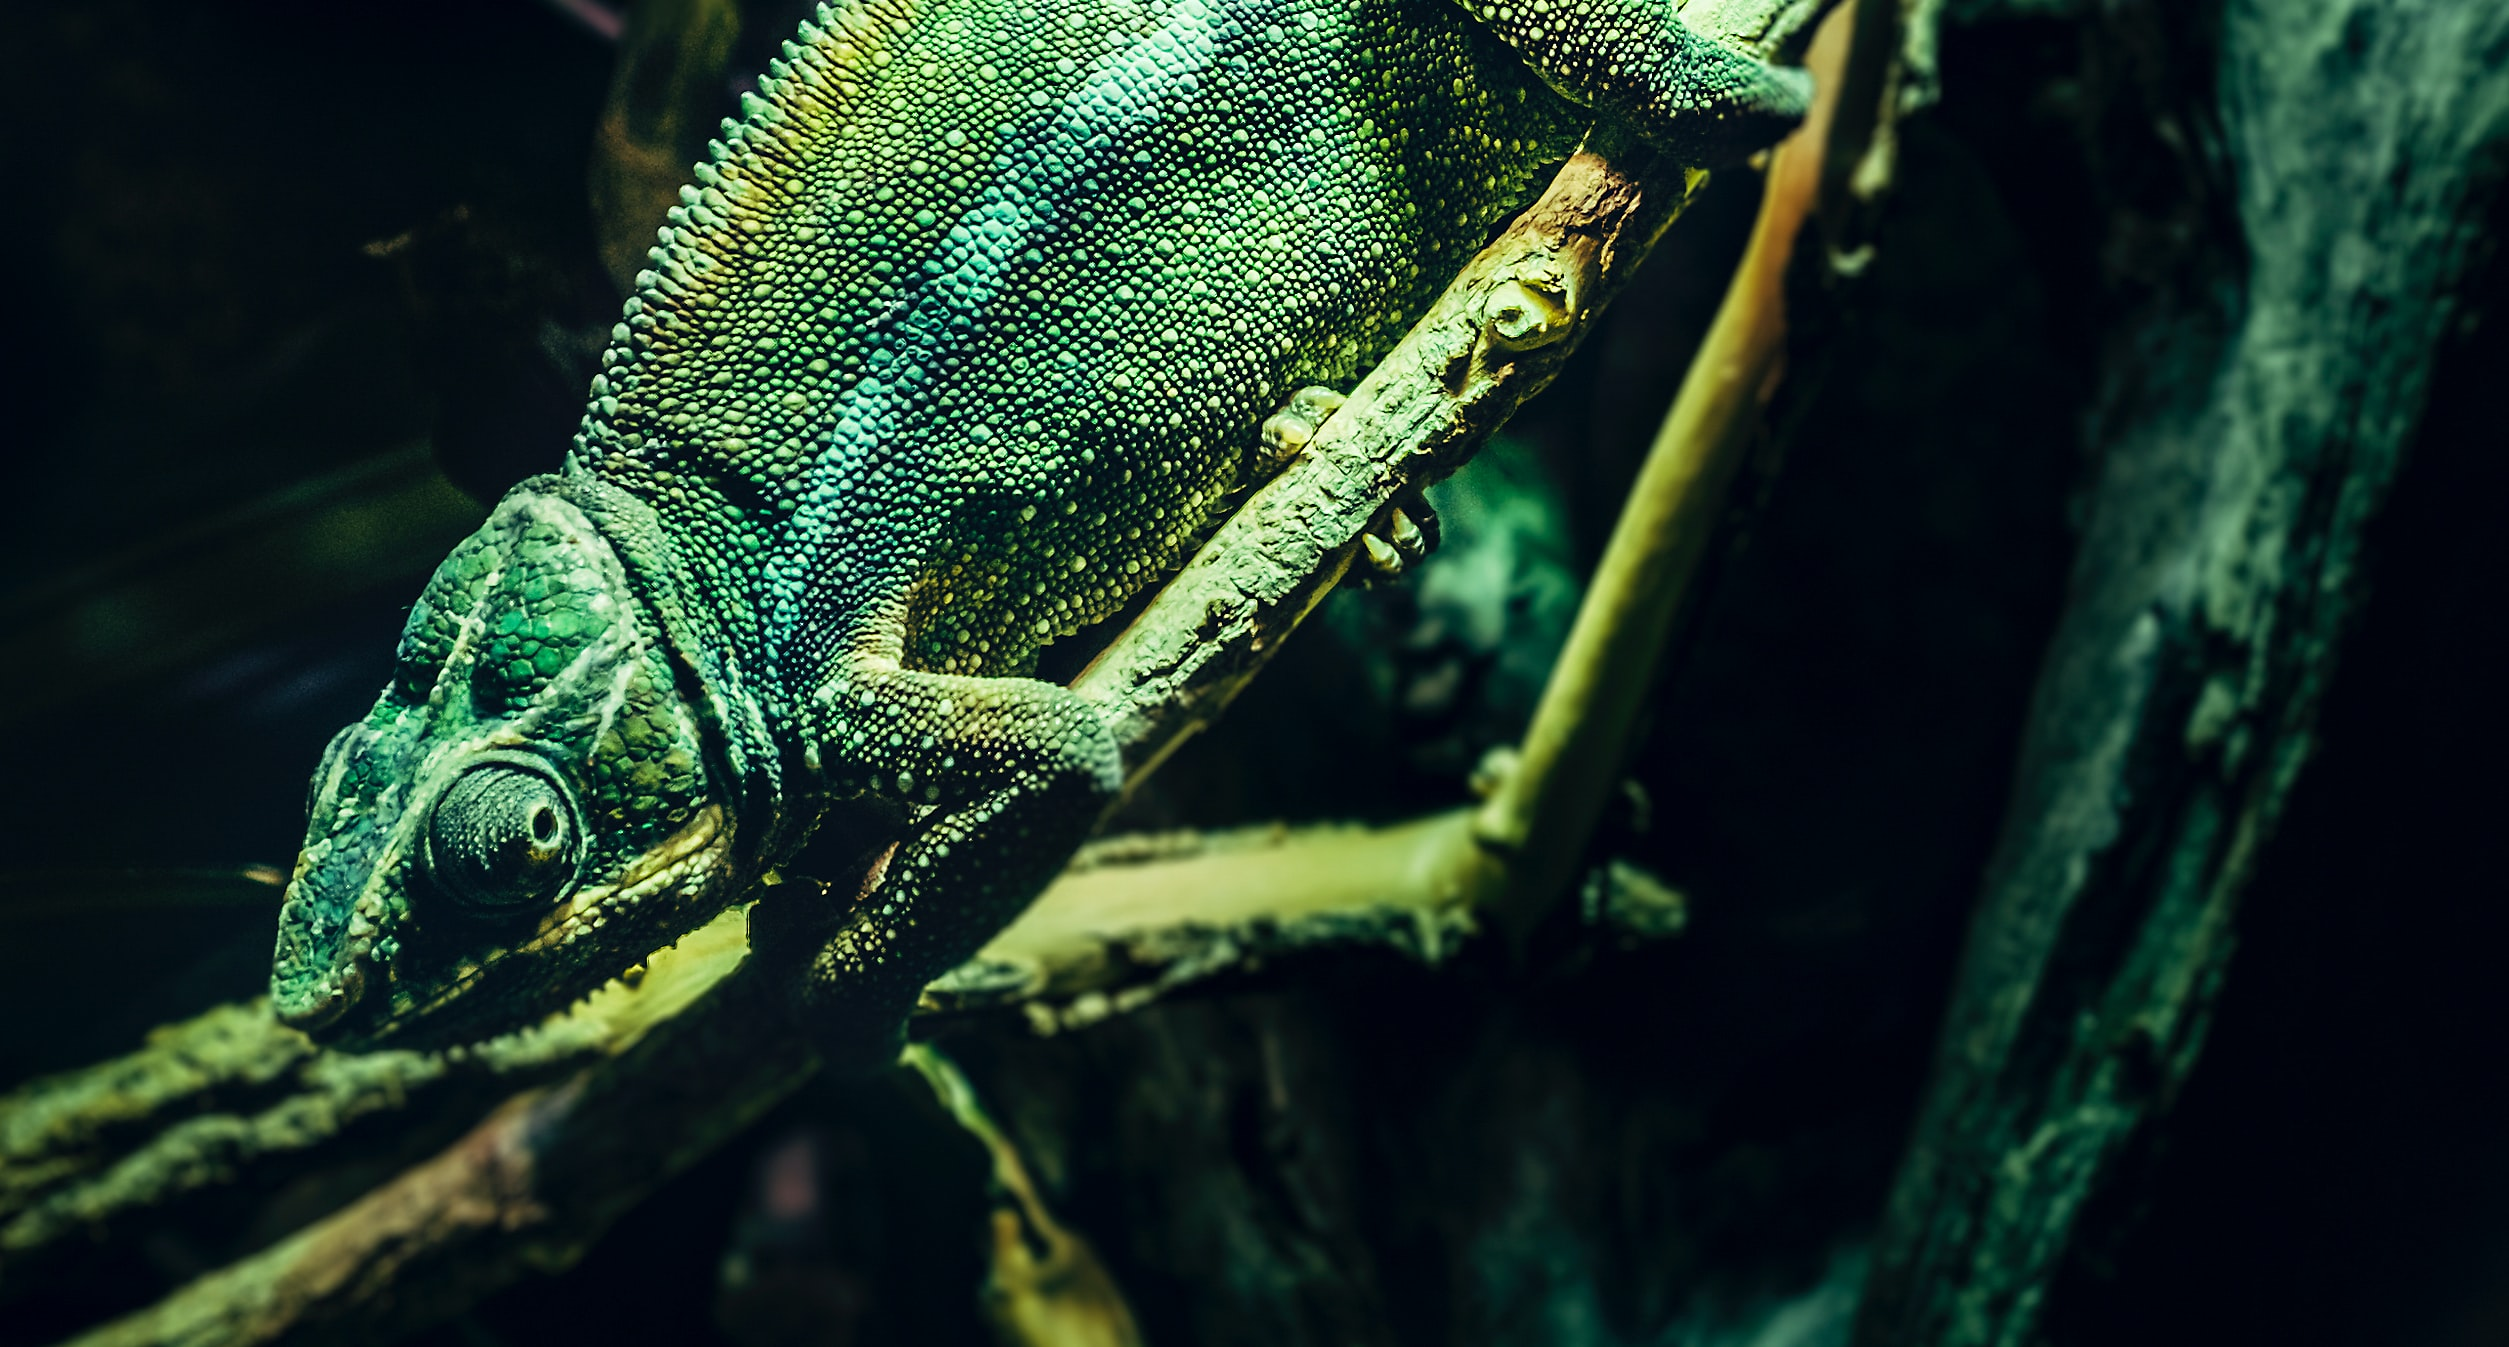 A chameleon blending into the green background